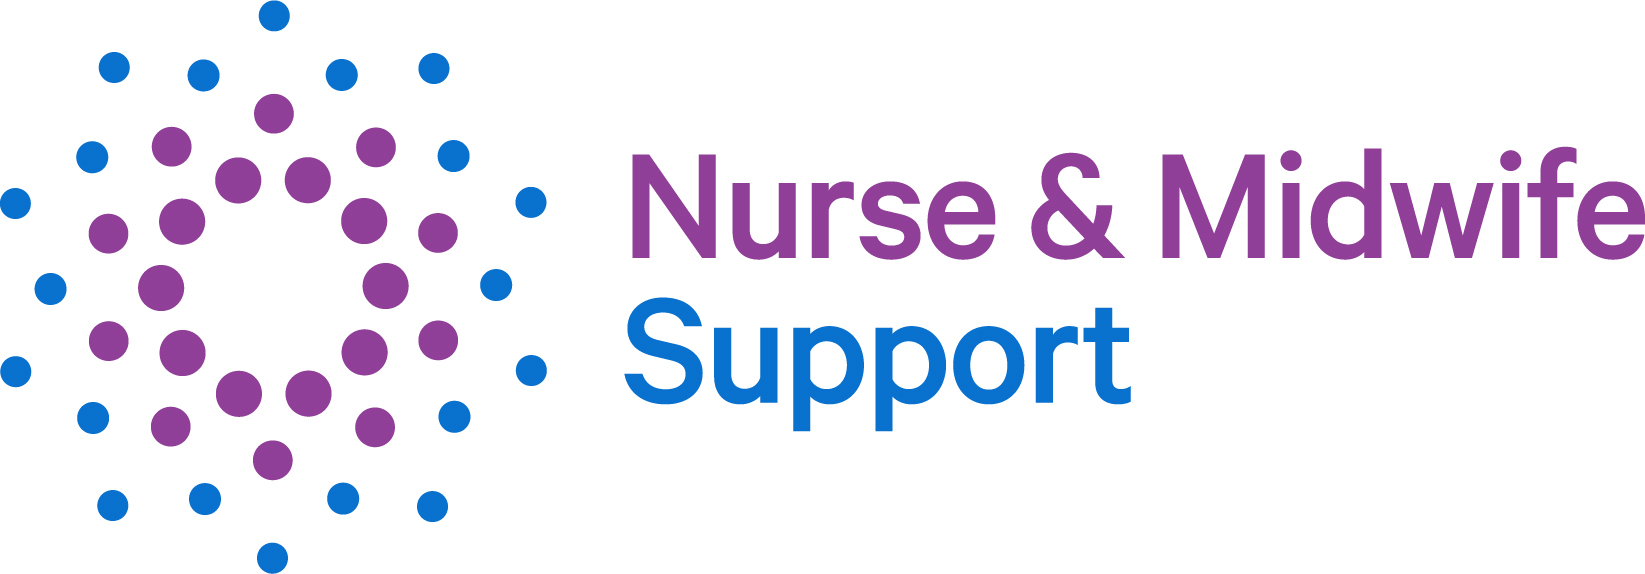 Nurse and Midwife Support Logo